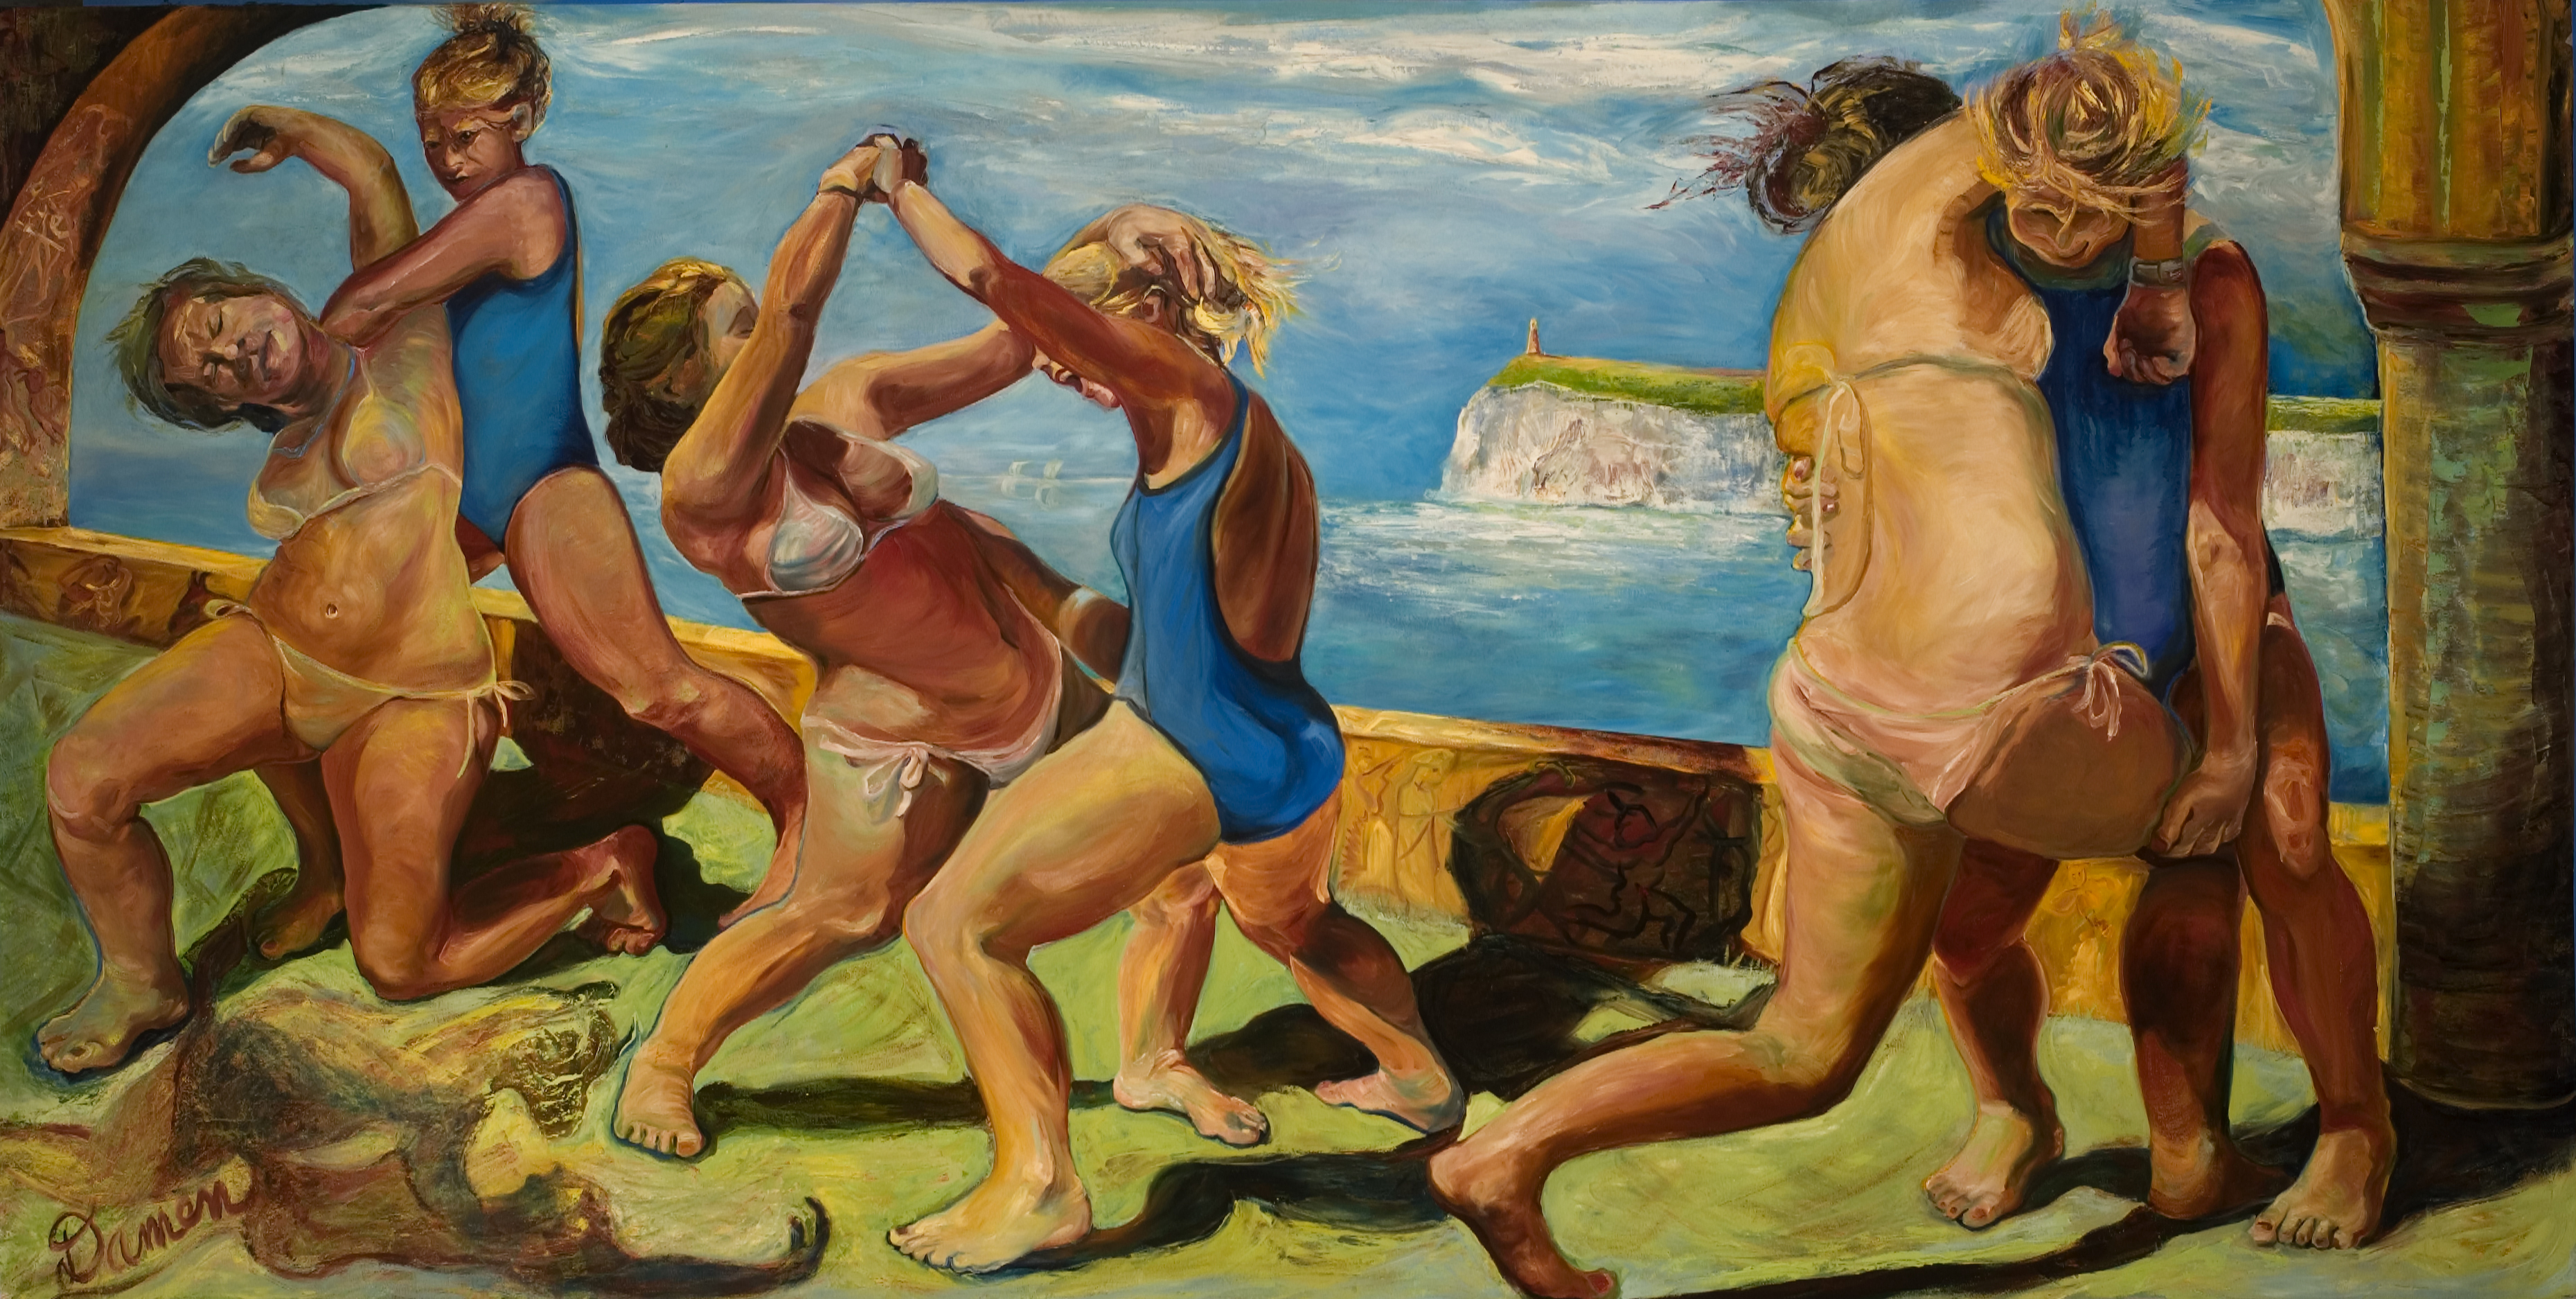 women wrestling, mythic characters,